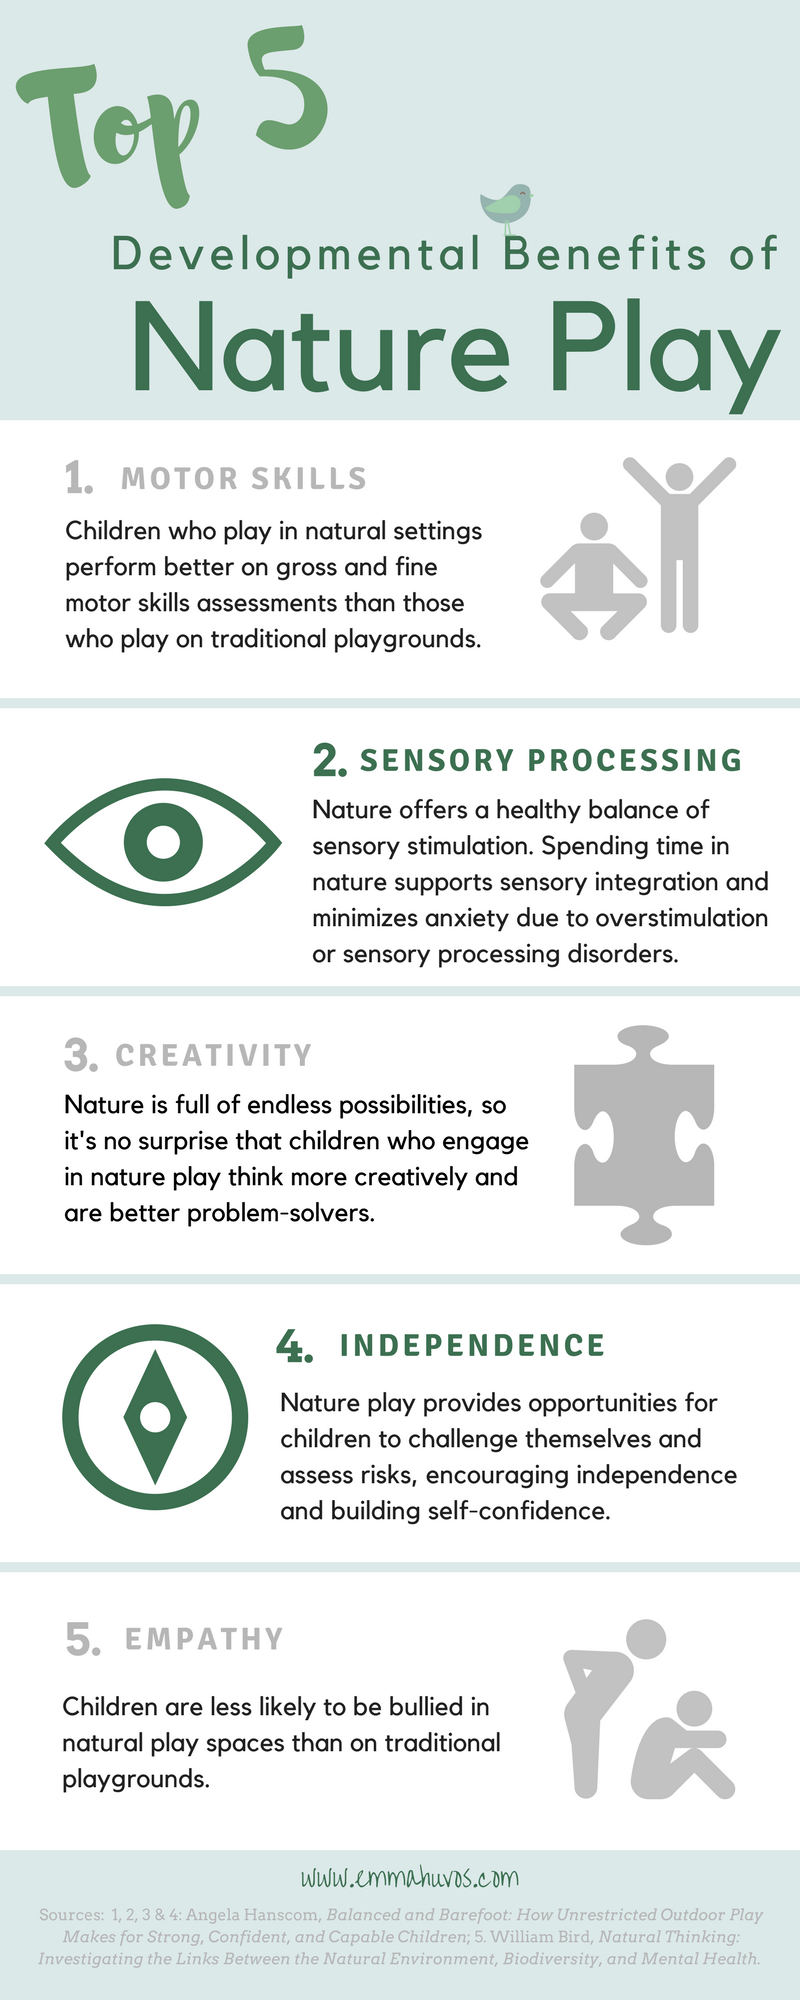 Top 5 Developmental Benefits of Nature Play